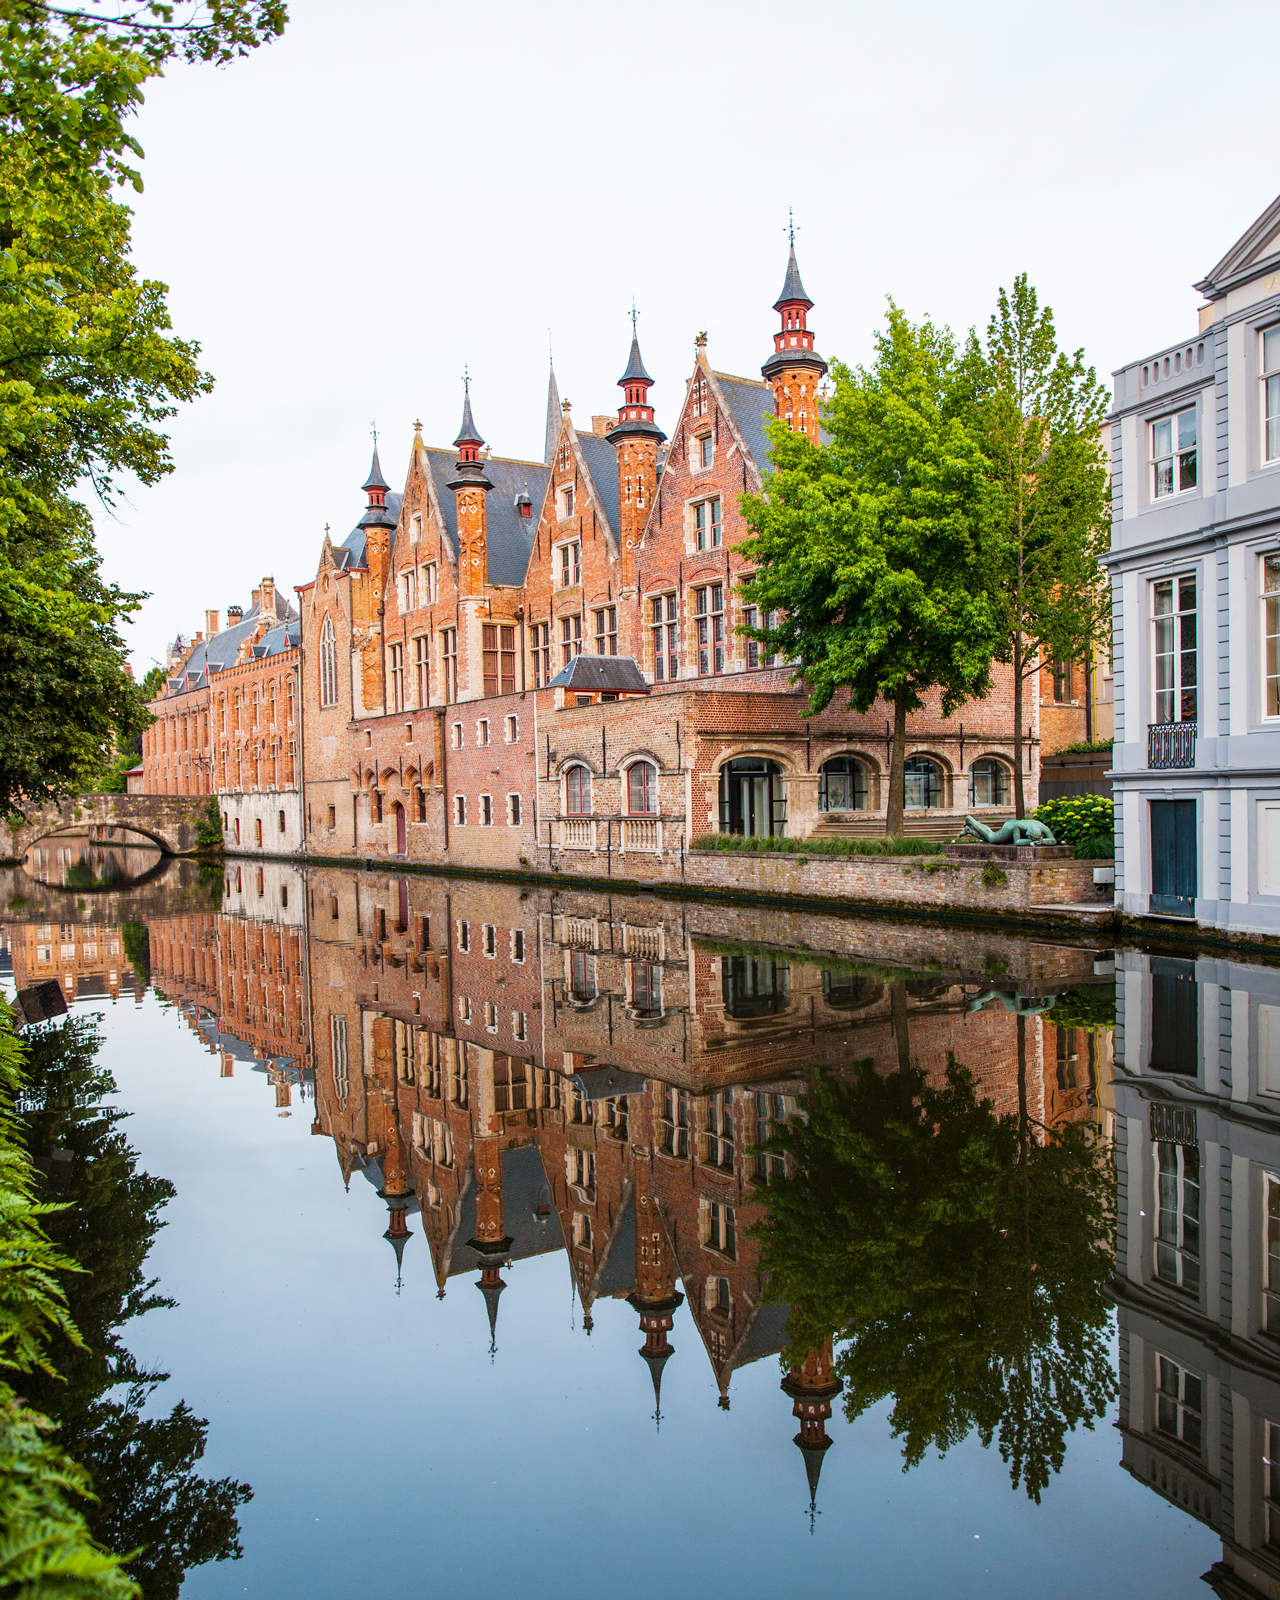 Charming canals encircle the Belgian town of Bruges